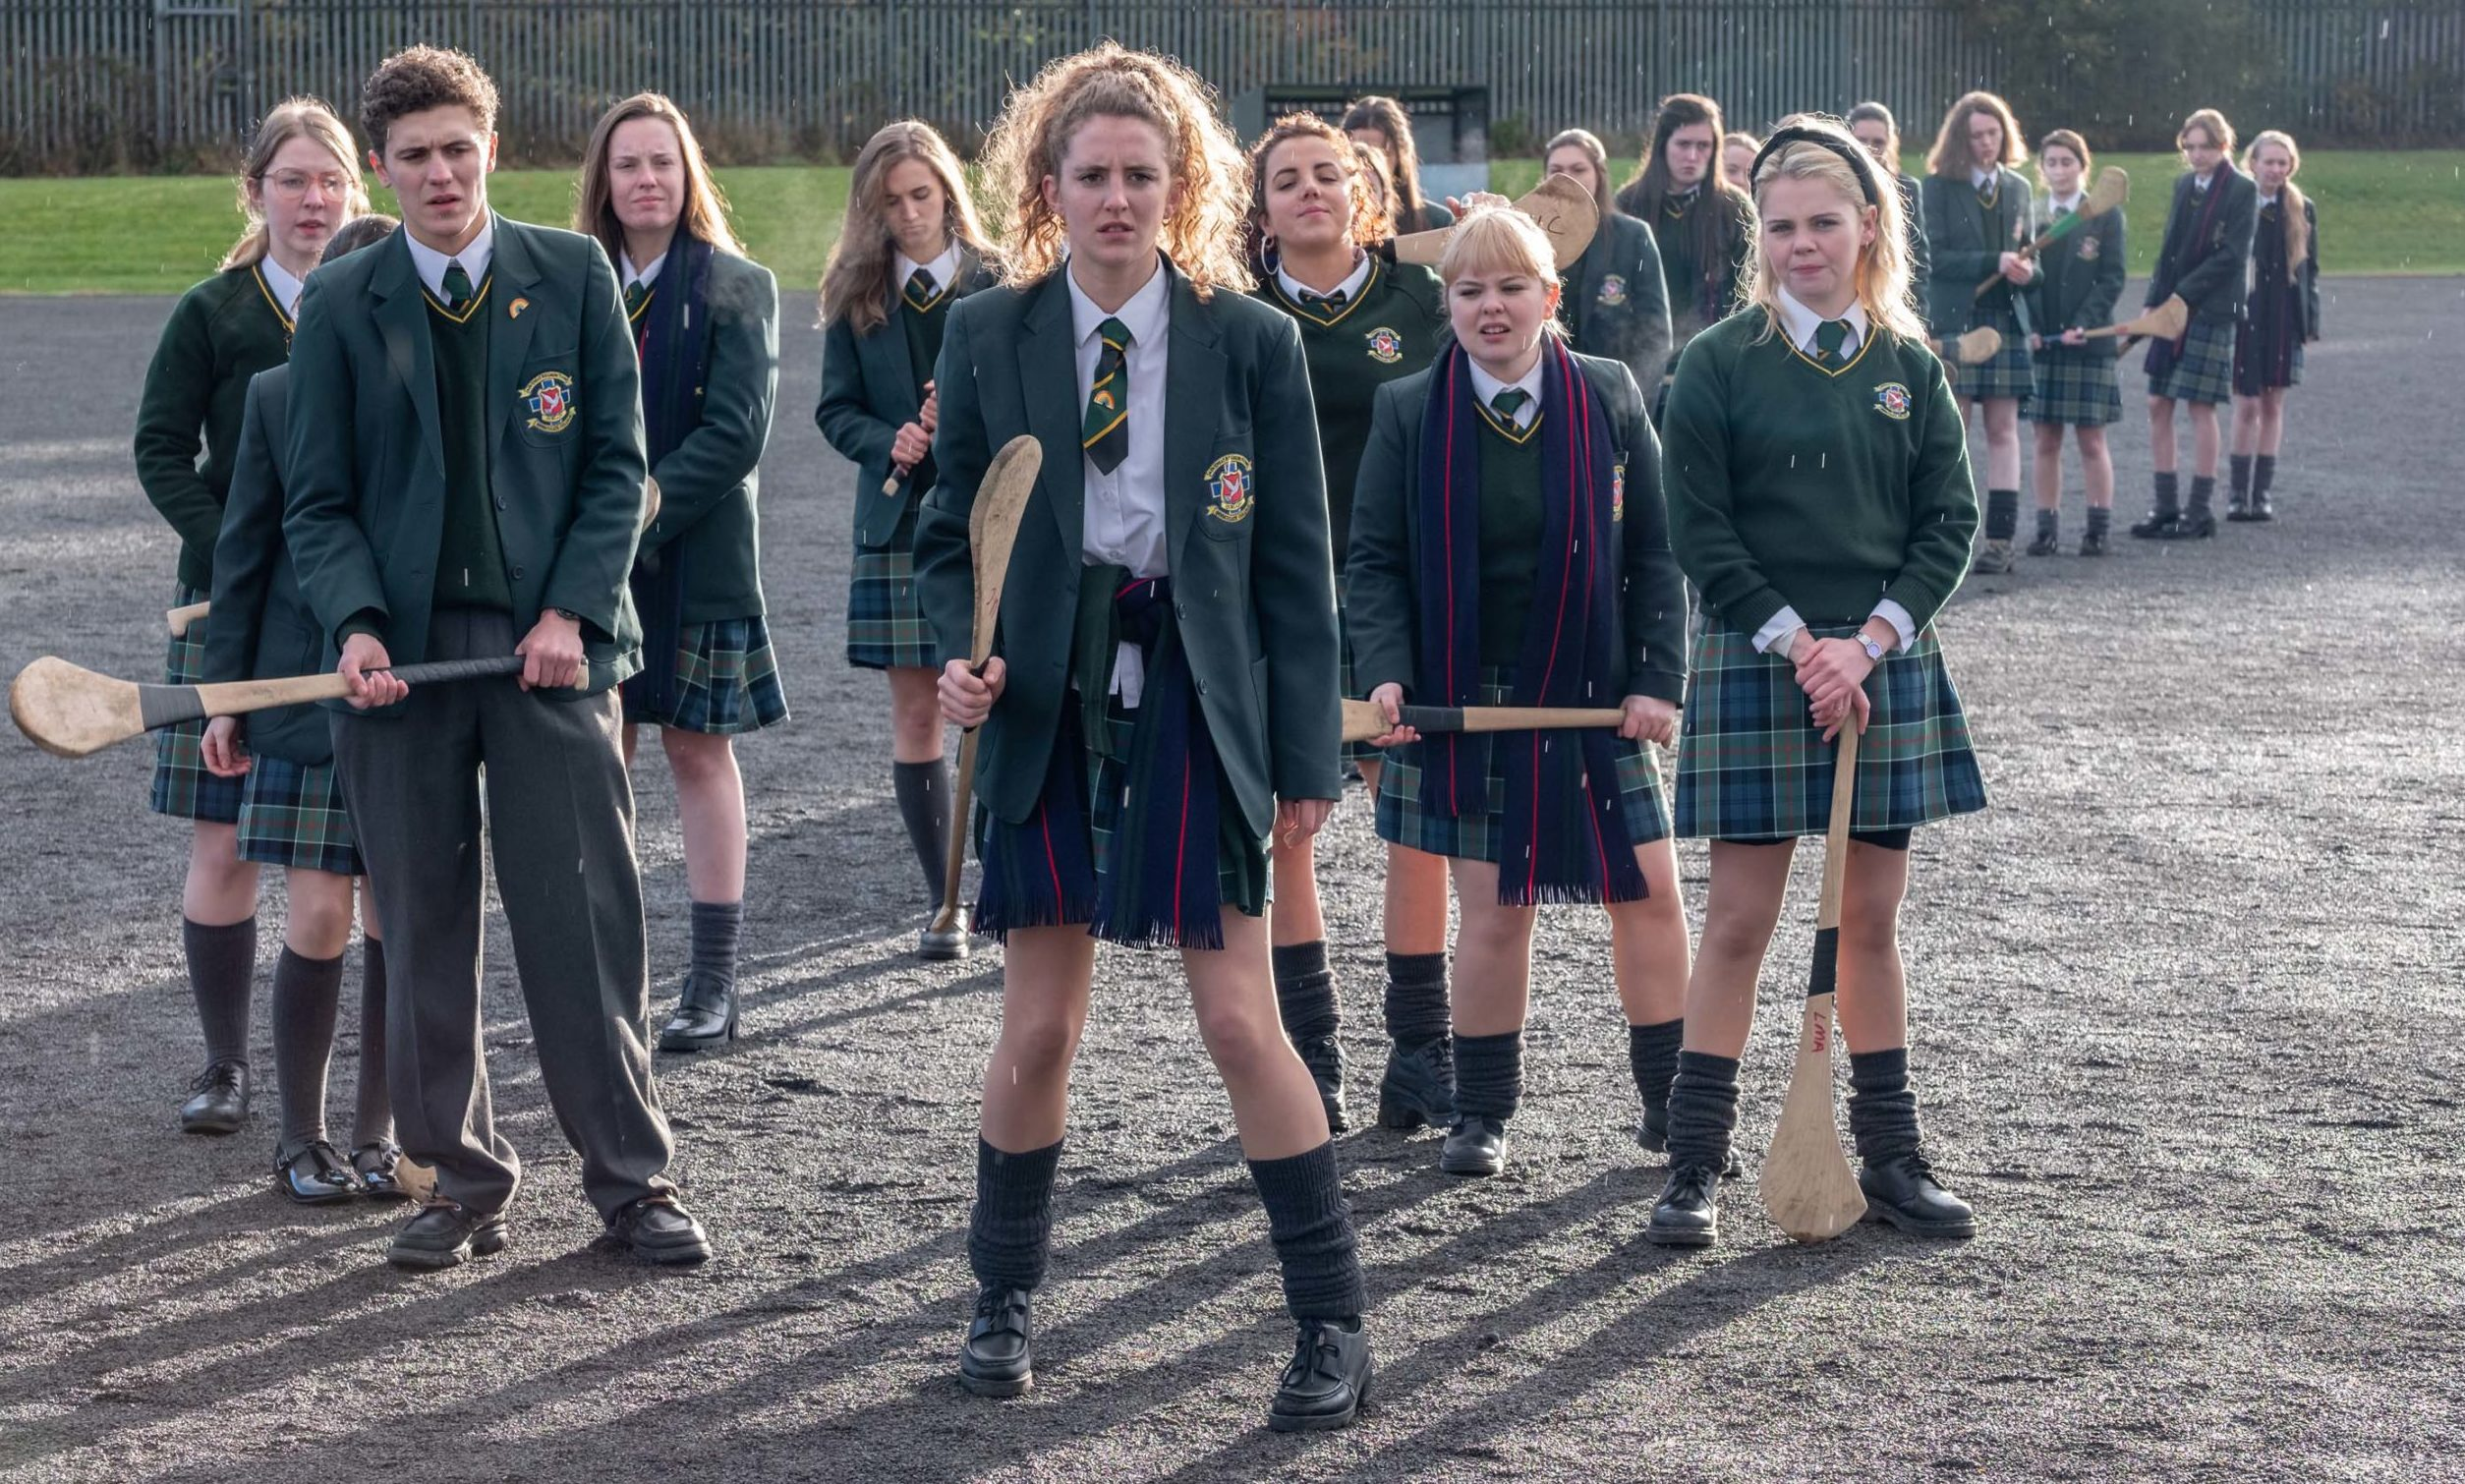 The Derry Girls.  James (Dylan Llewellyn), Erin (Saoirse Monica-Jackson), Michelle (Jamie-Lee O'Donnell), Clare (Nicola Coughlan) and Orla (Louisa Clare Harland)